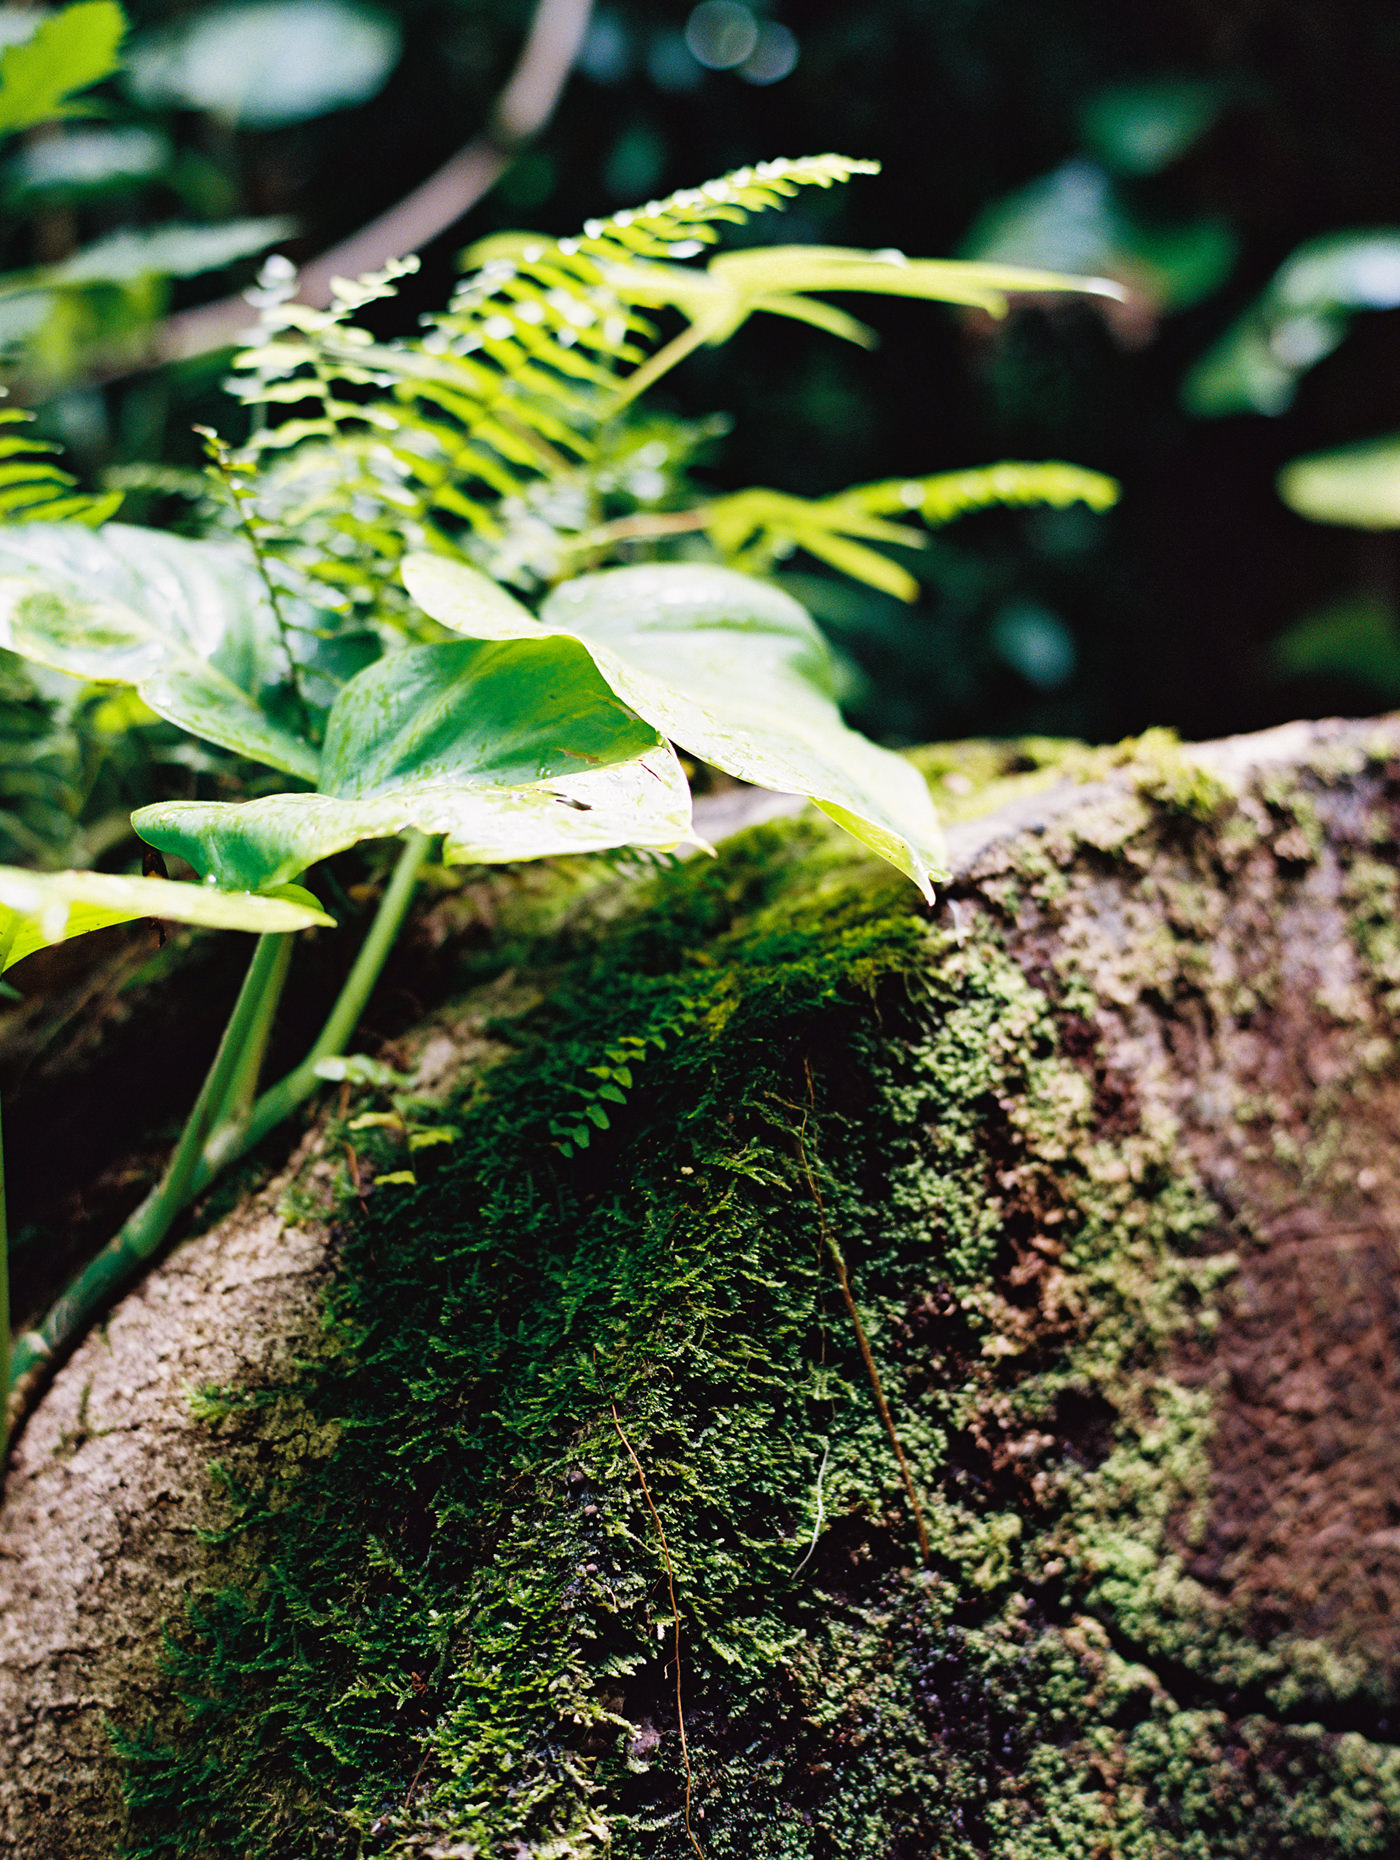 I'm a sucker for moss on trees. Not sure why, but it's real. Shot on my Contax 645, Portra 400+1 with a Hoya macro filter.